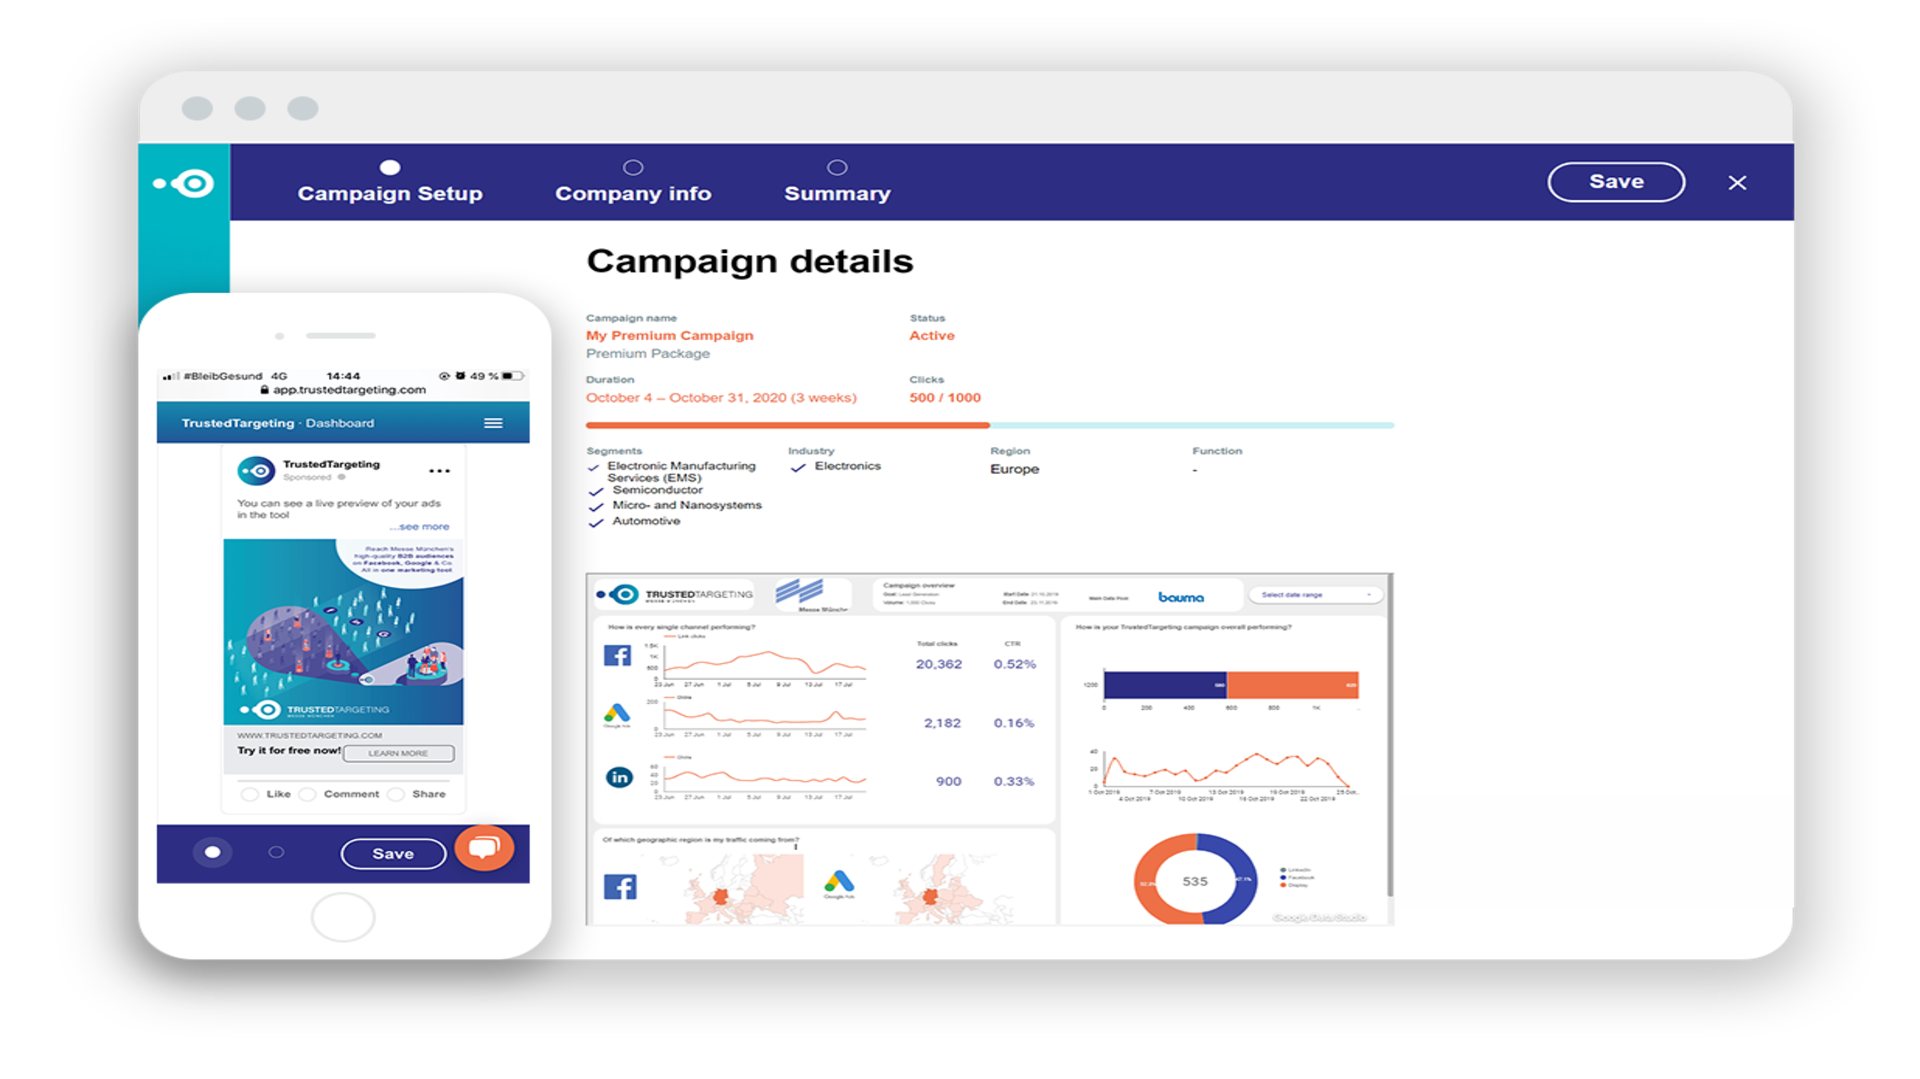 Gallery image 1 - With your live dashboard, you have the possibility to check the most important key performance indicators and results of your campaign. Thus you can always measure the success of your advertising campaigns in real-time.